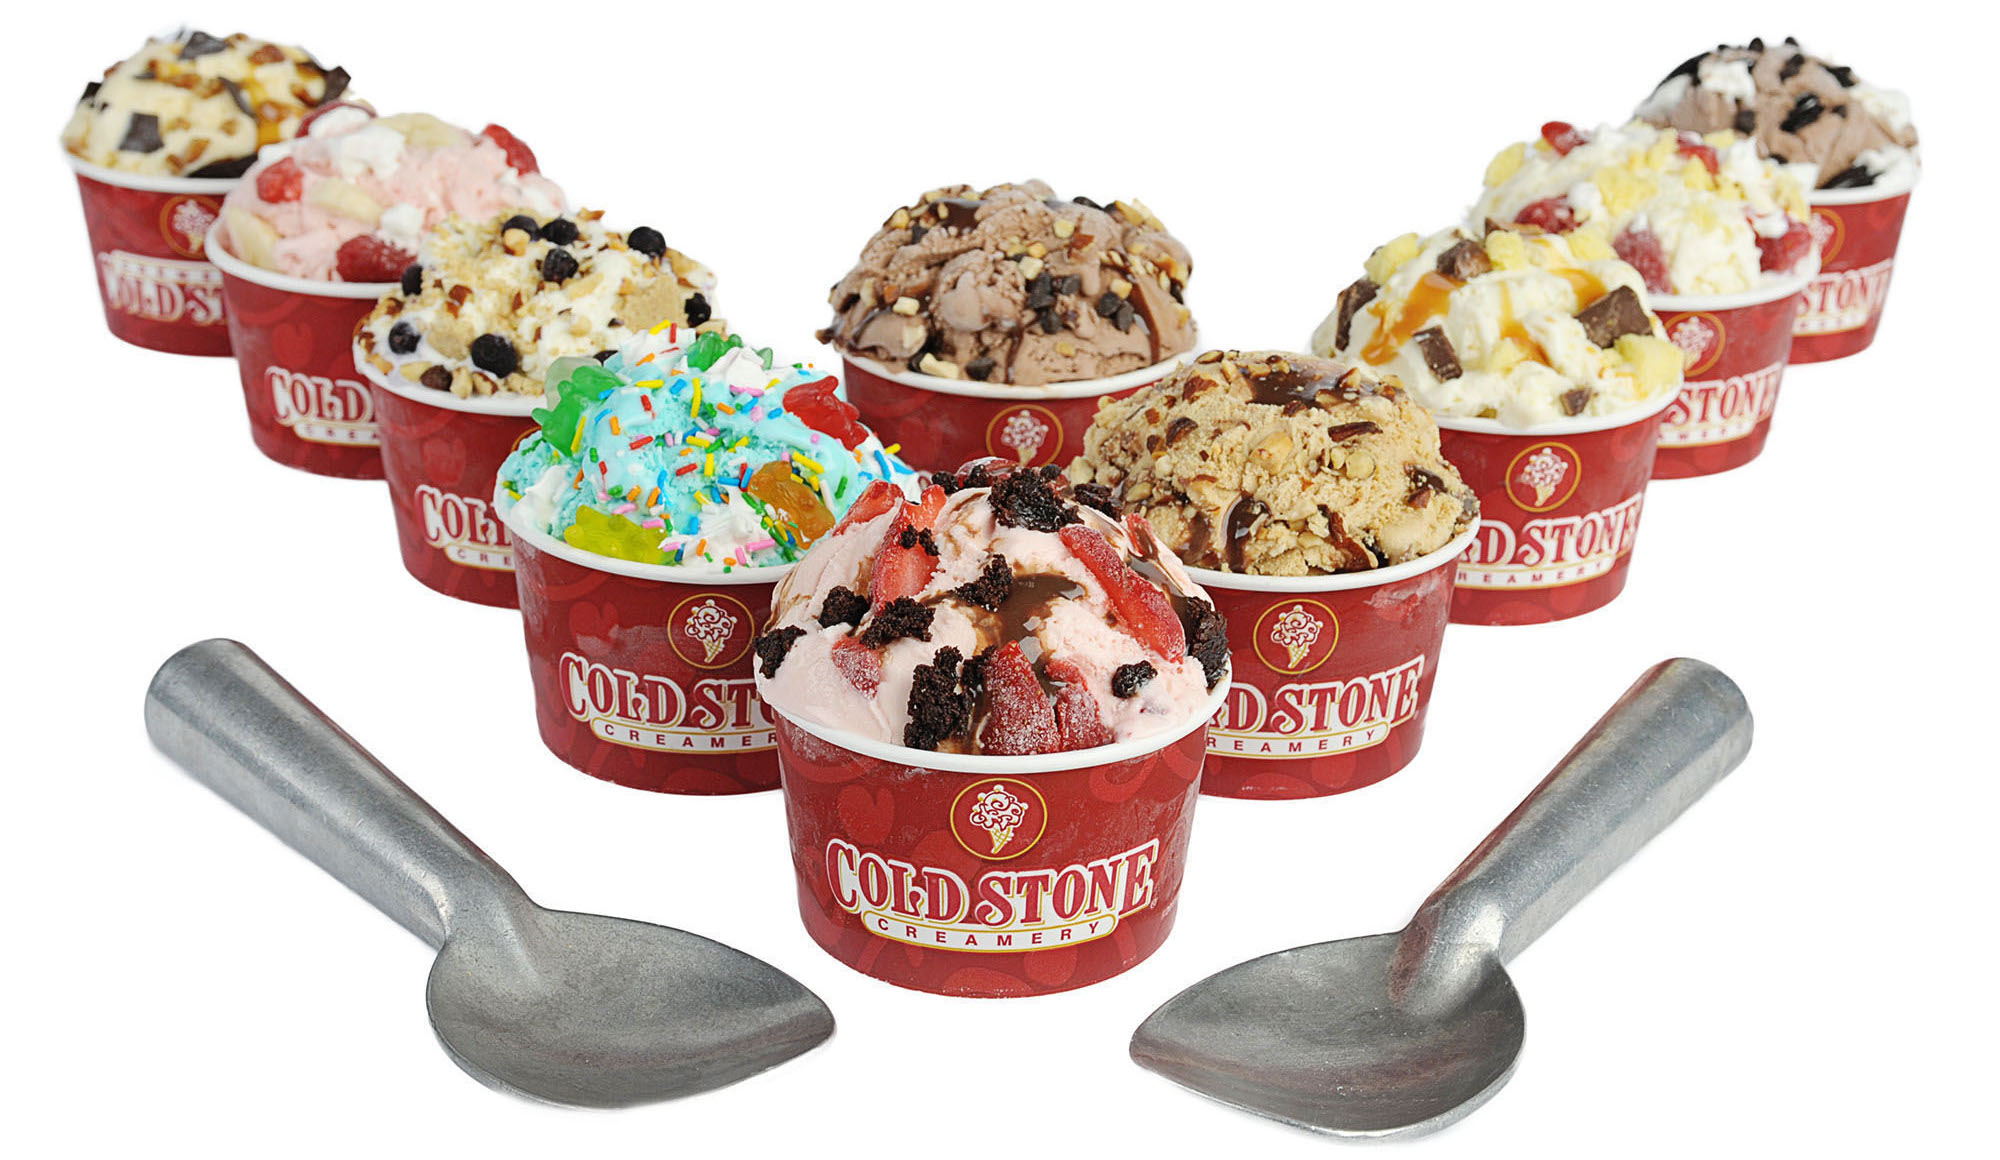 Selection of ice cream at Cold Stone Creamery